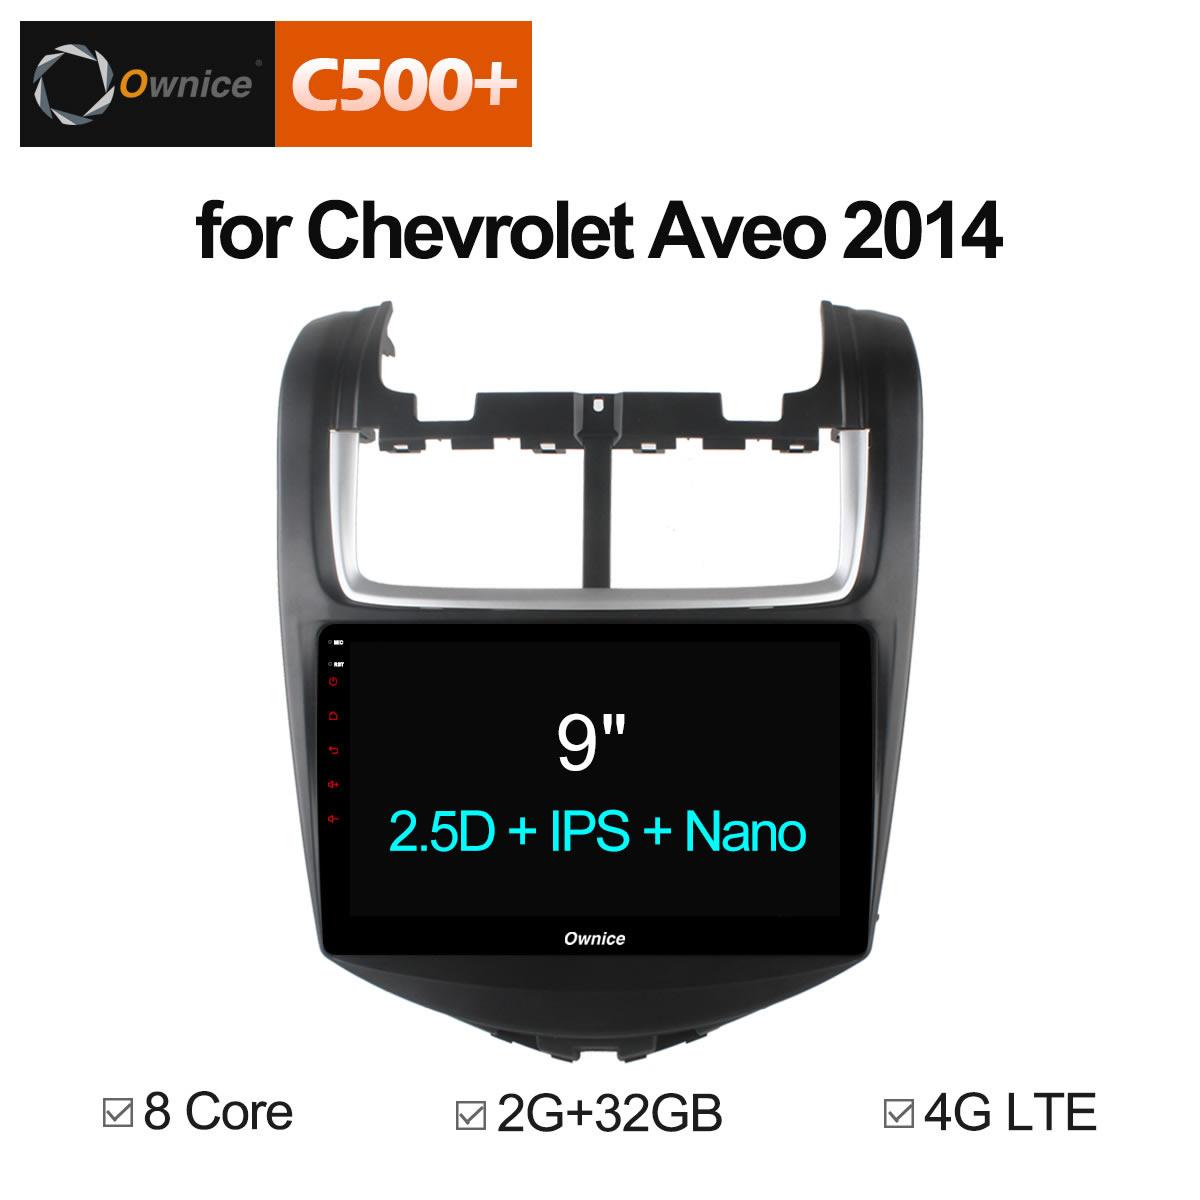 Ownice C500 + G10 Octa huit Core Android 8.1 lecteur d'autoradio GPS Navi pour CHEVROLET AVEO 2014 2 GB + 32 GB Support 4G LTE CarPlay